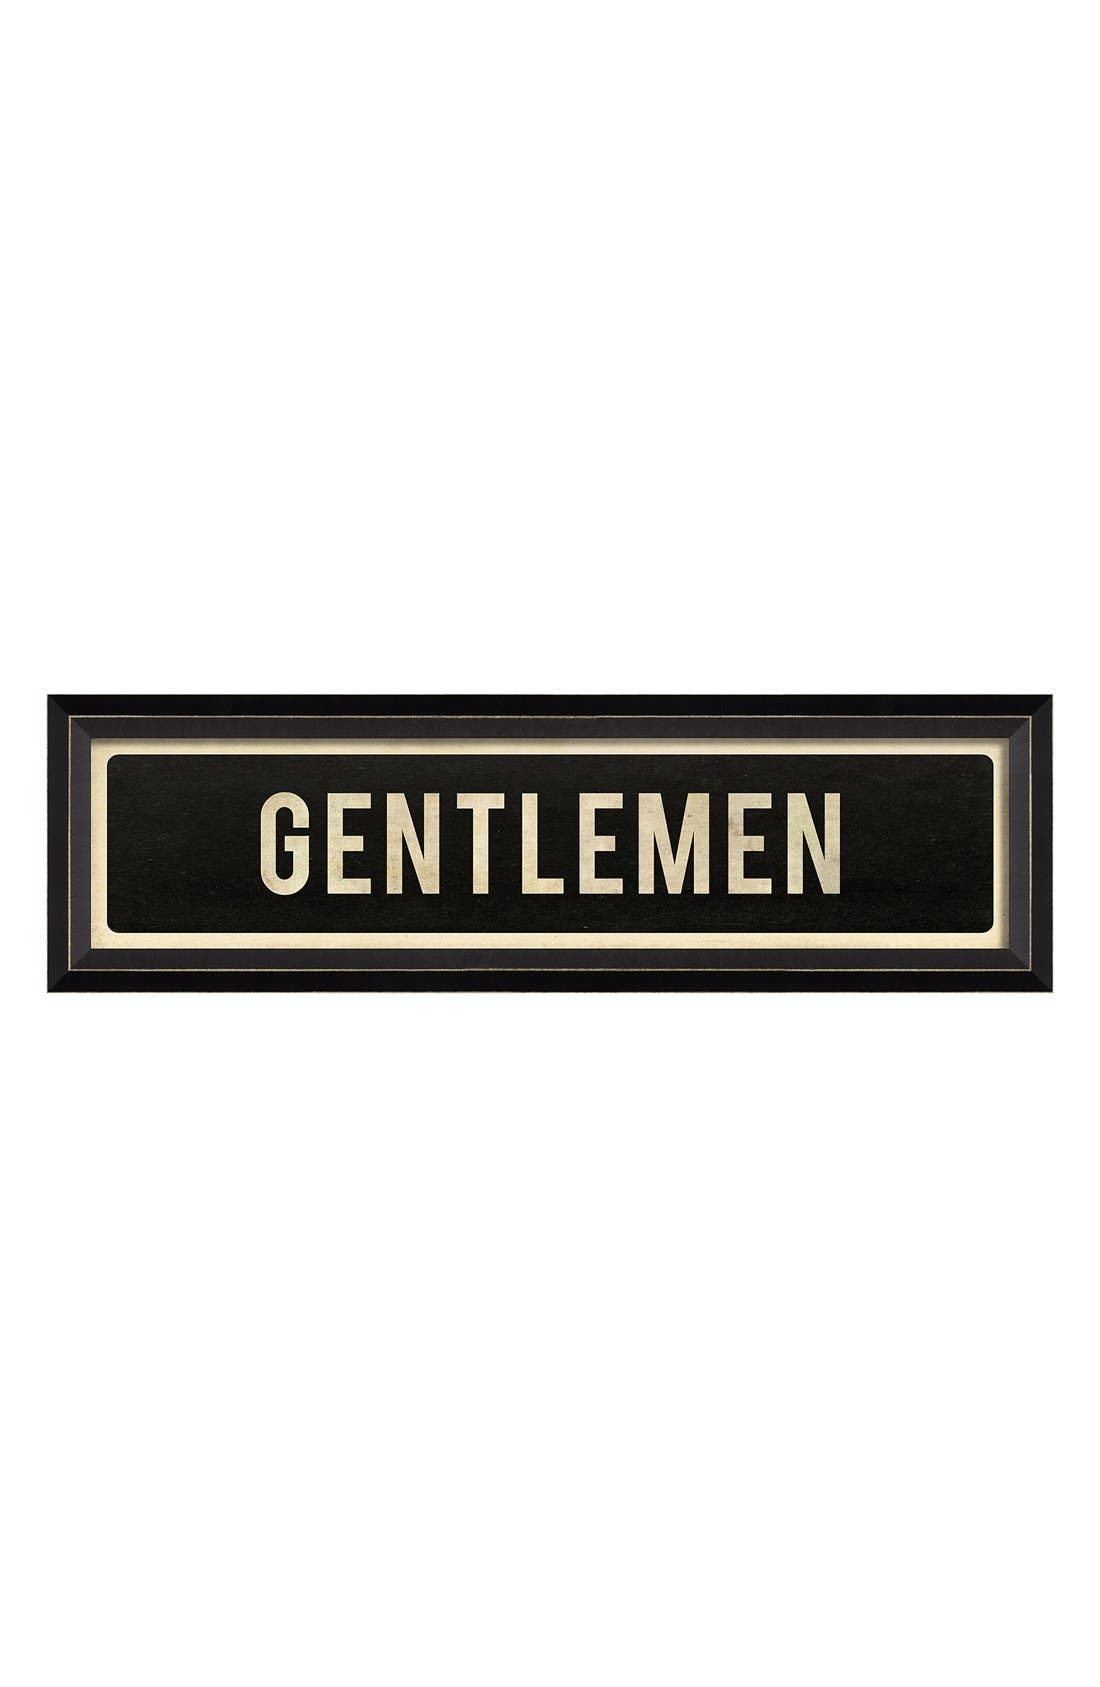 Alternate Image 1 Selected - Spicher and Company 'Gentlemen' Vintage Look Sign Artwork